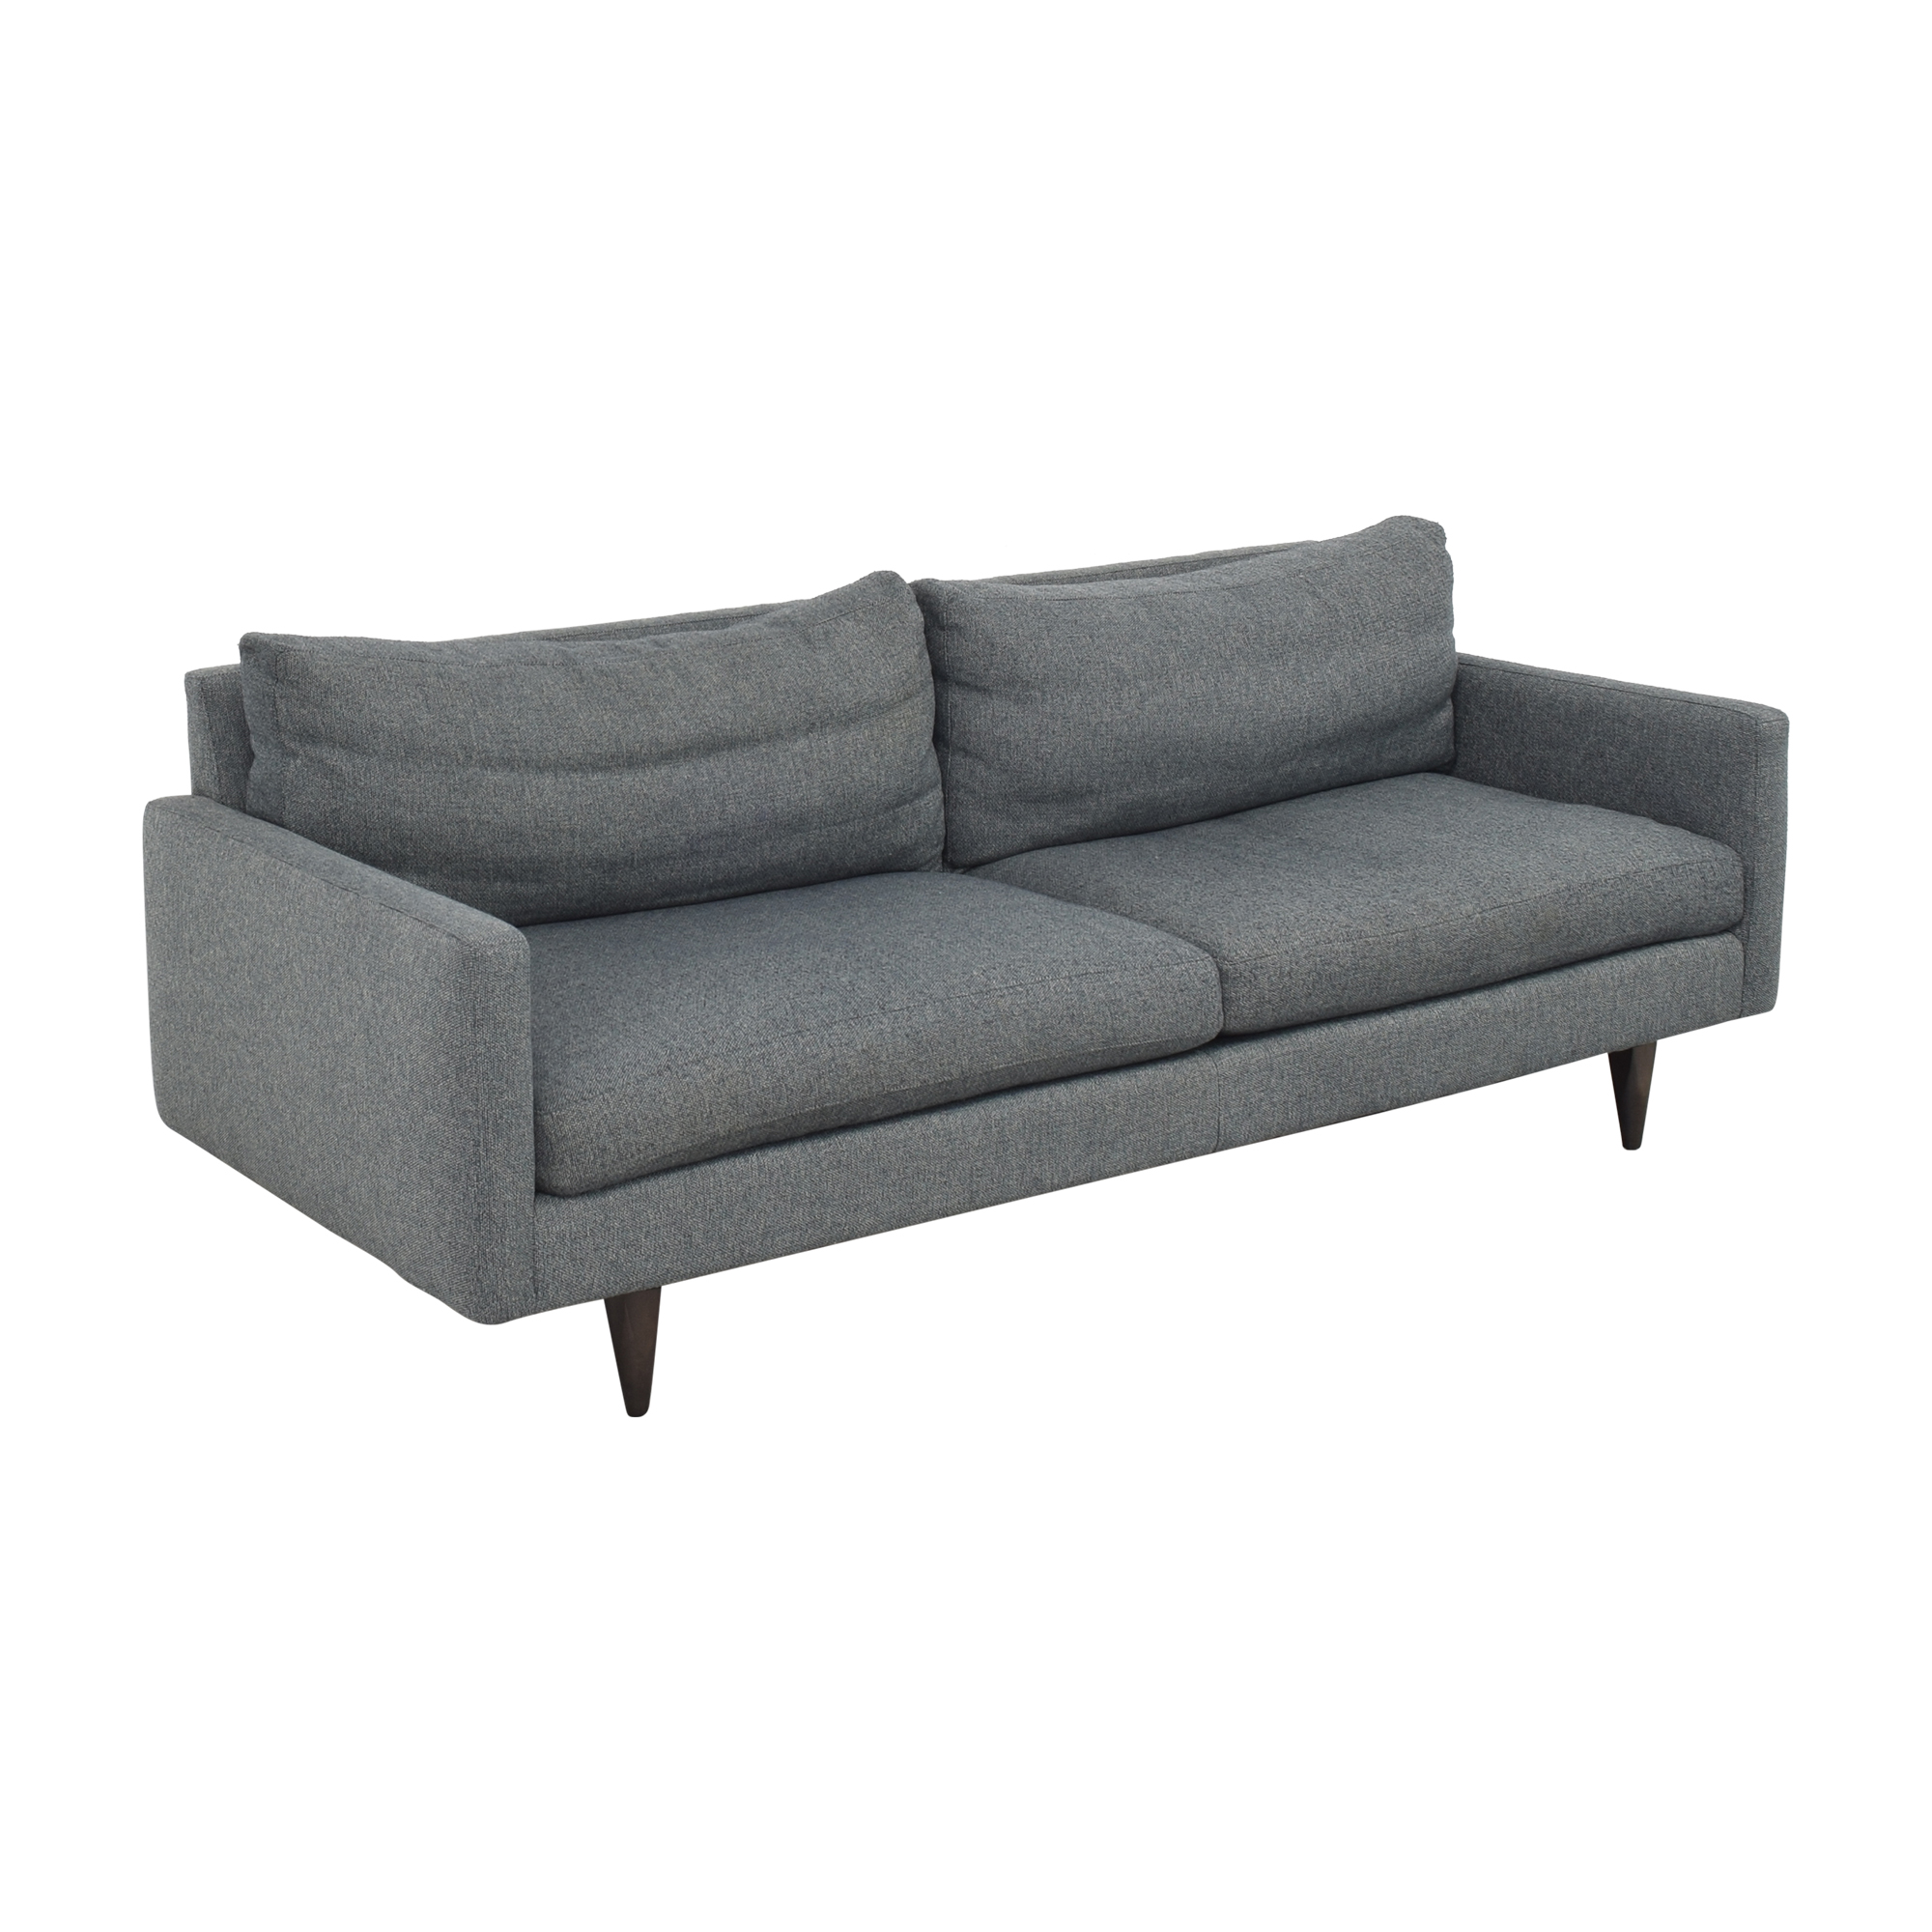 Room & Board Jasper Two Cushion Sofa / Classic Sofas